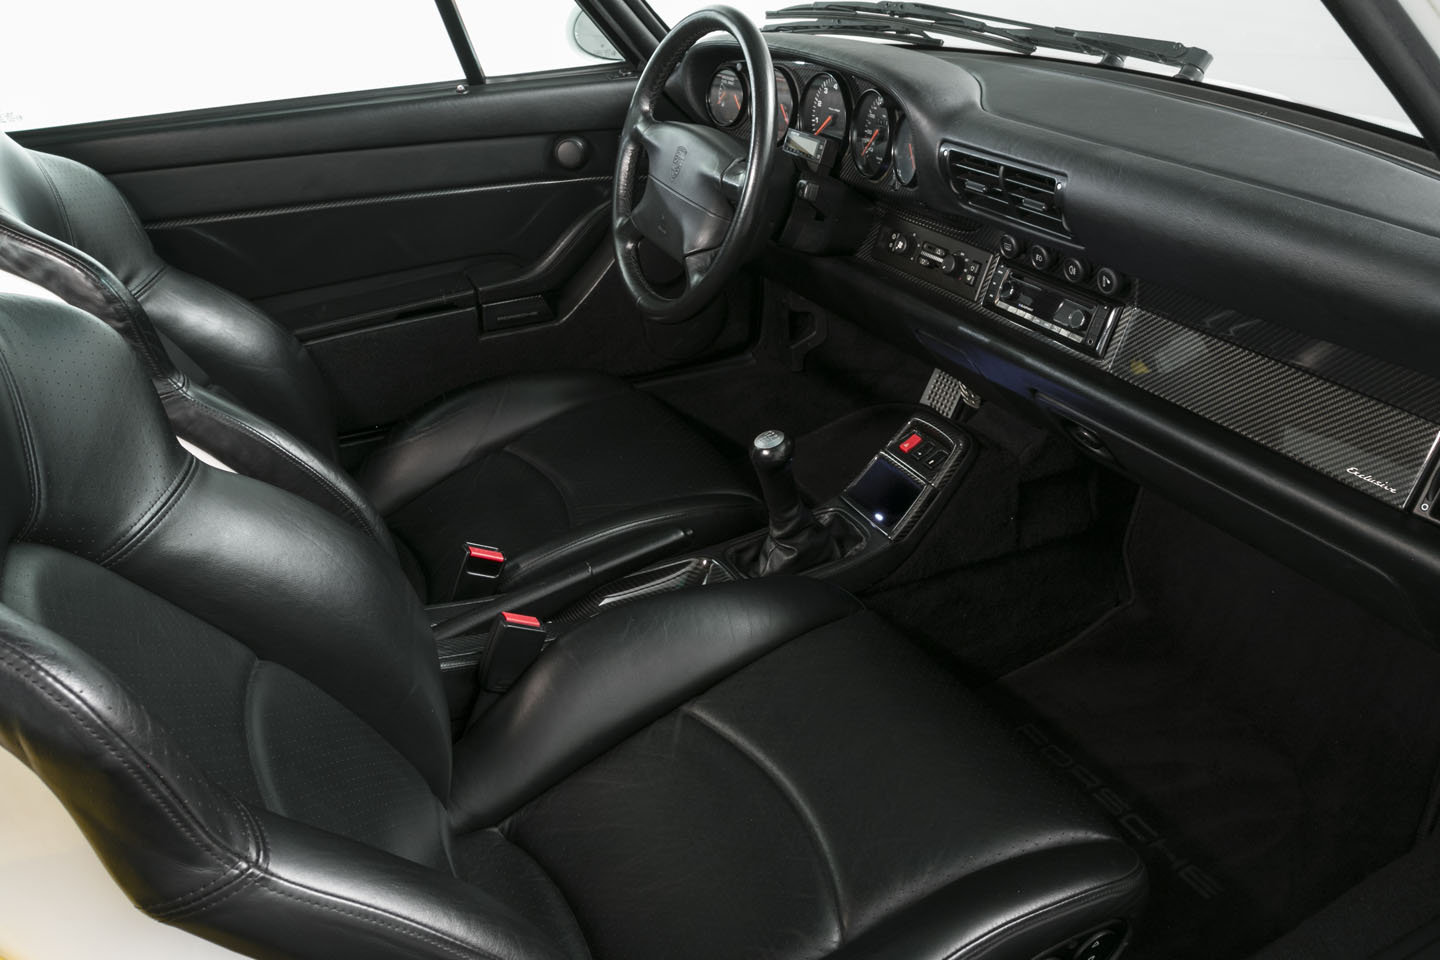 1996 Porsche 993 TURBO FACTORY X50/X79 PACKS !! LHD For Sale (picture 5 of 6)